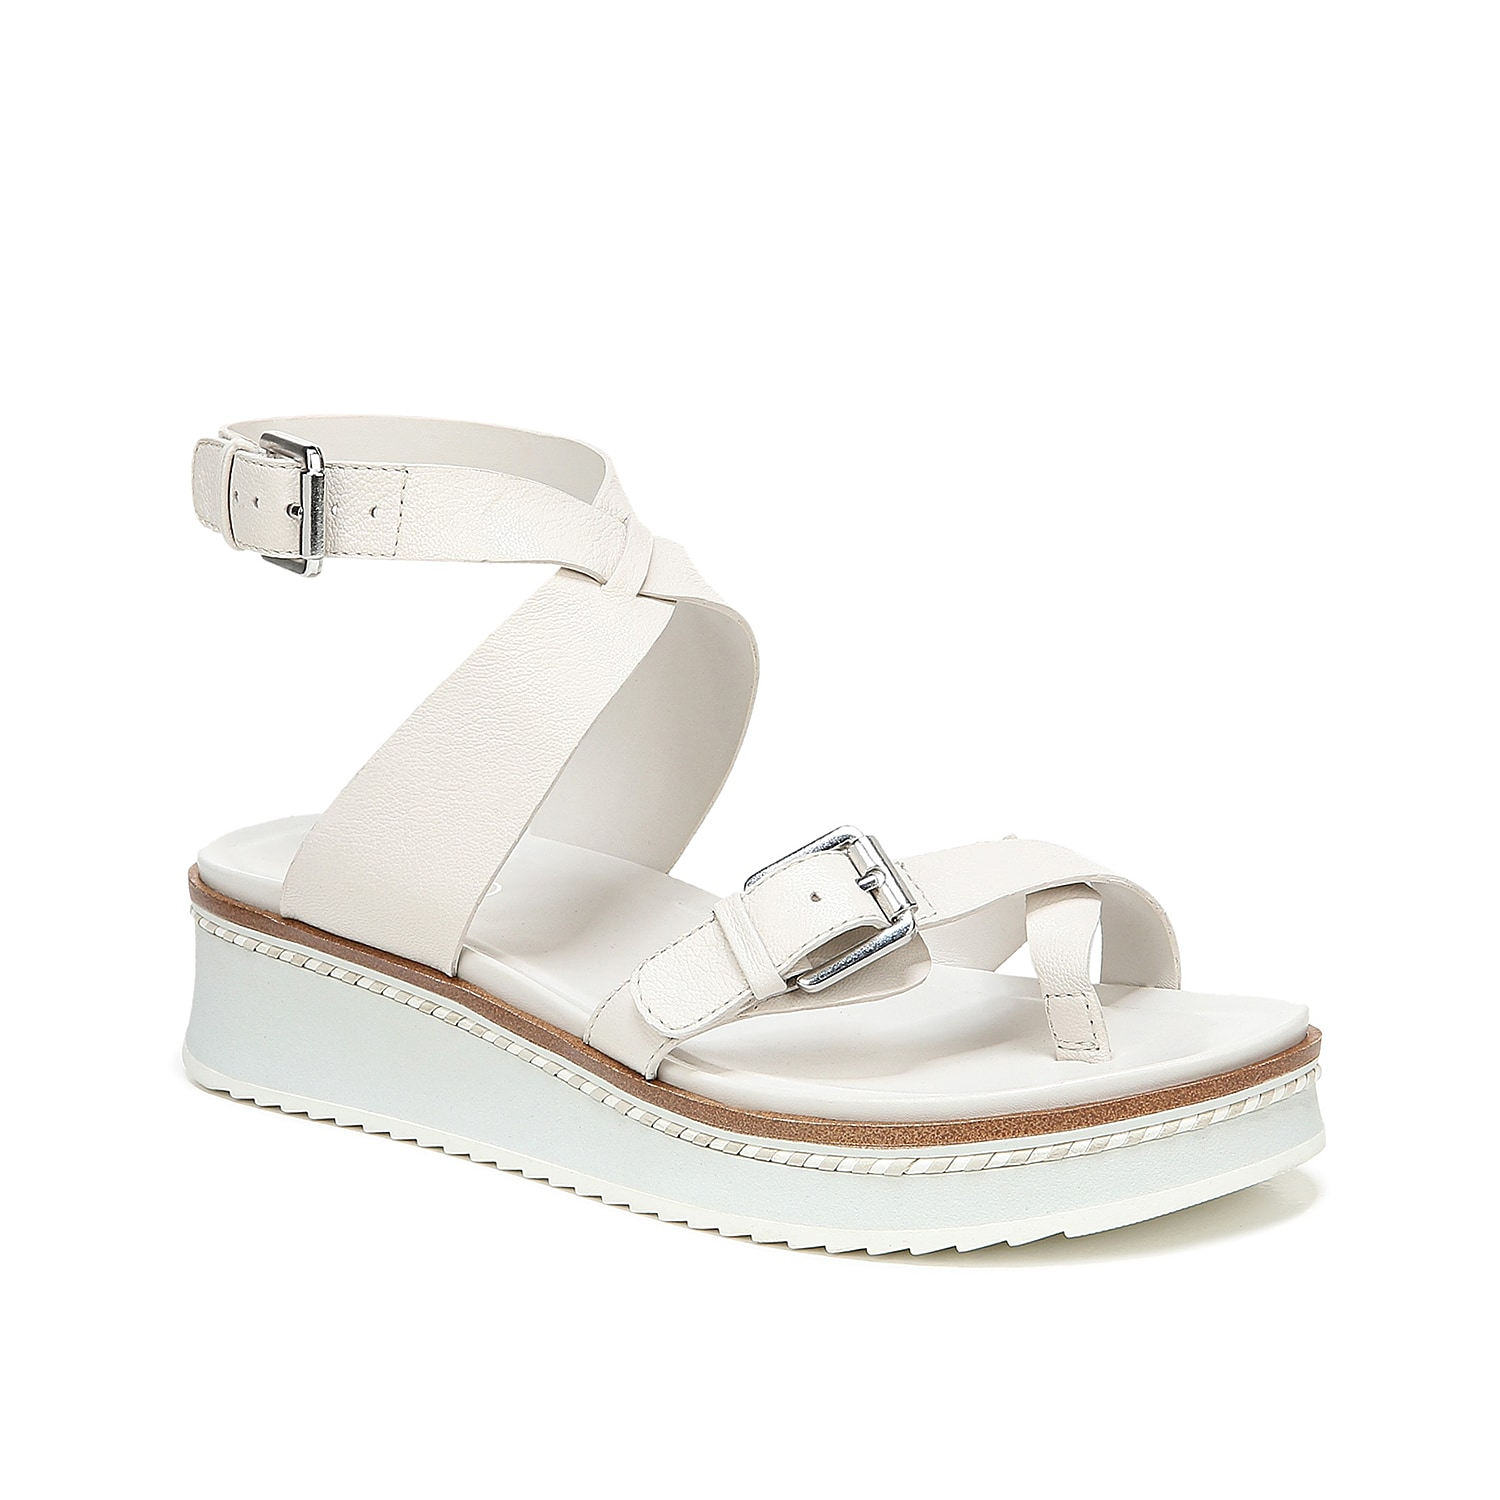 Strapped high around the ankle for a no-slip fit, the Eli sandals from Franco Sarto showcase an athletic vibe that\\\'s completed with a white sawtooth sole. A toe ring loop looks iconic.